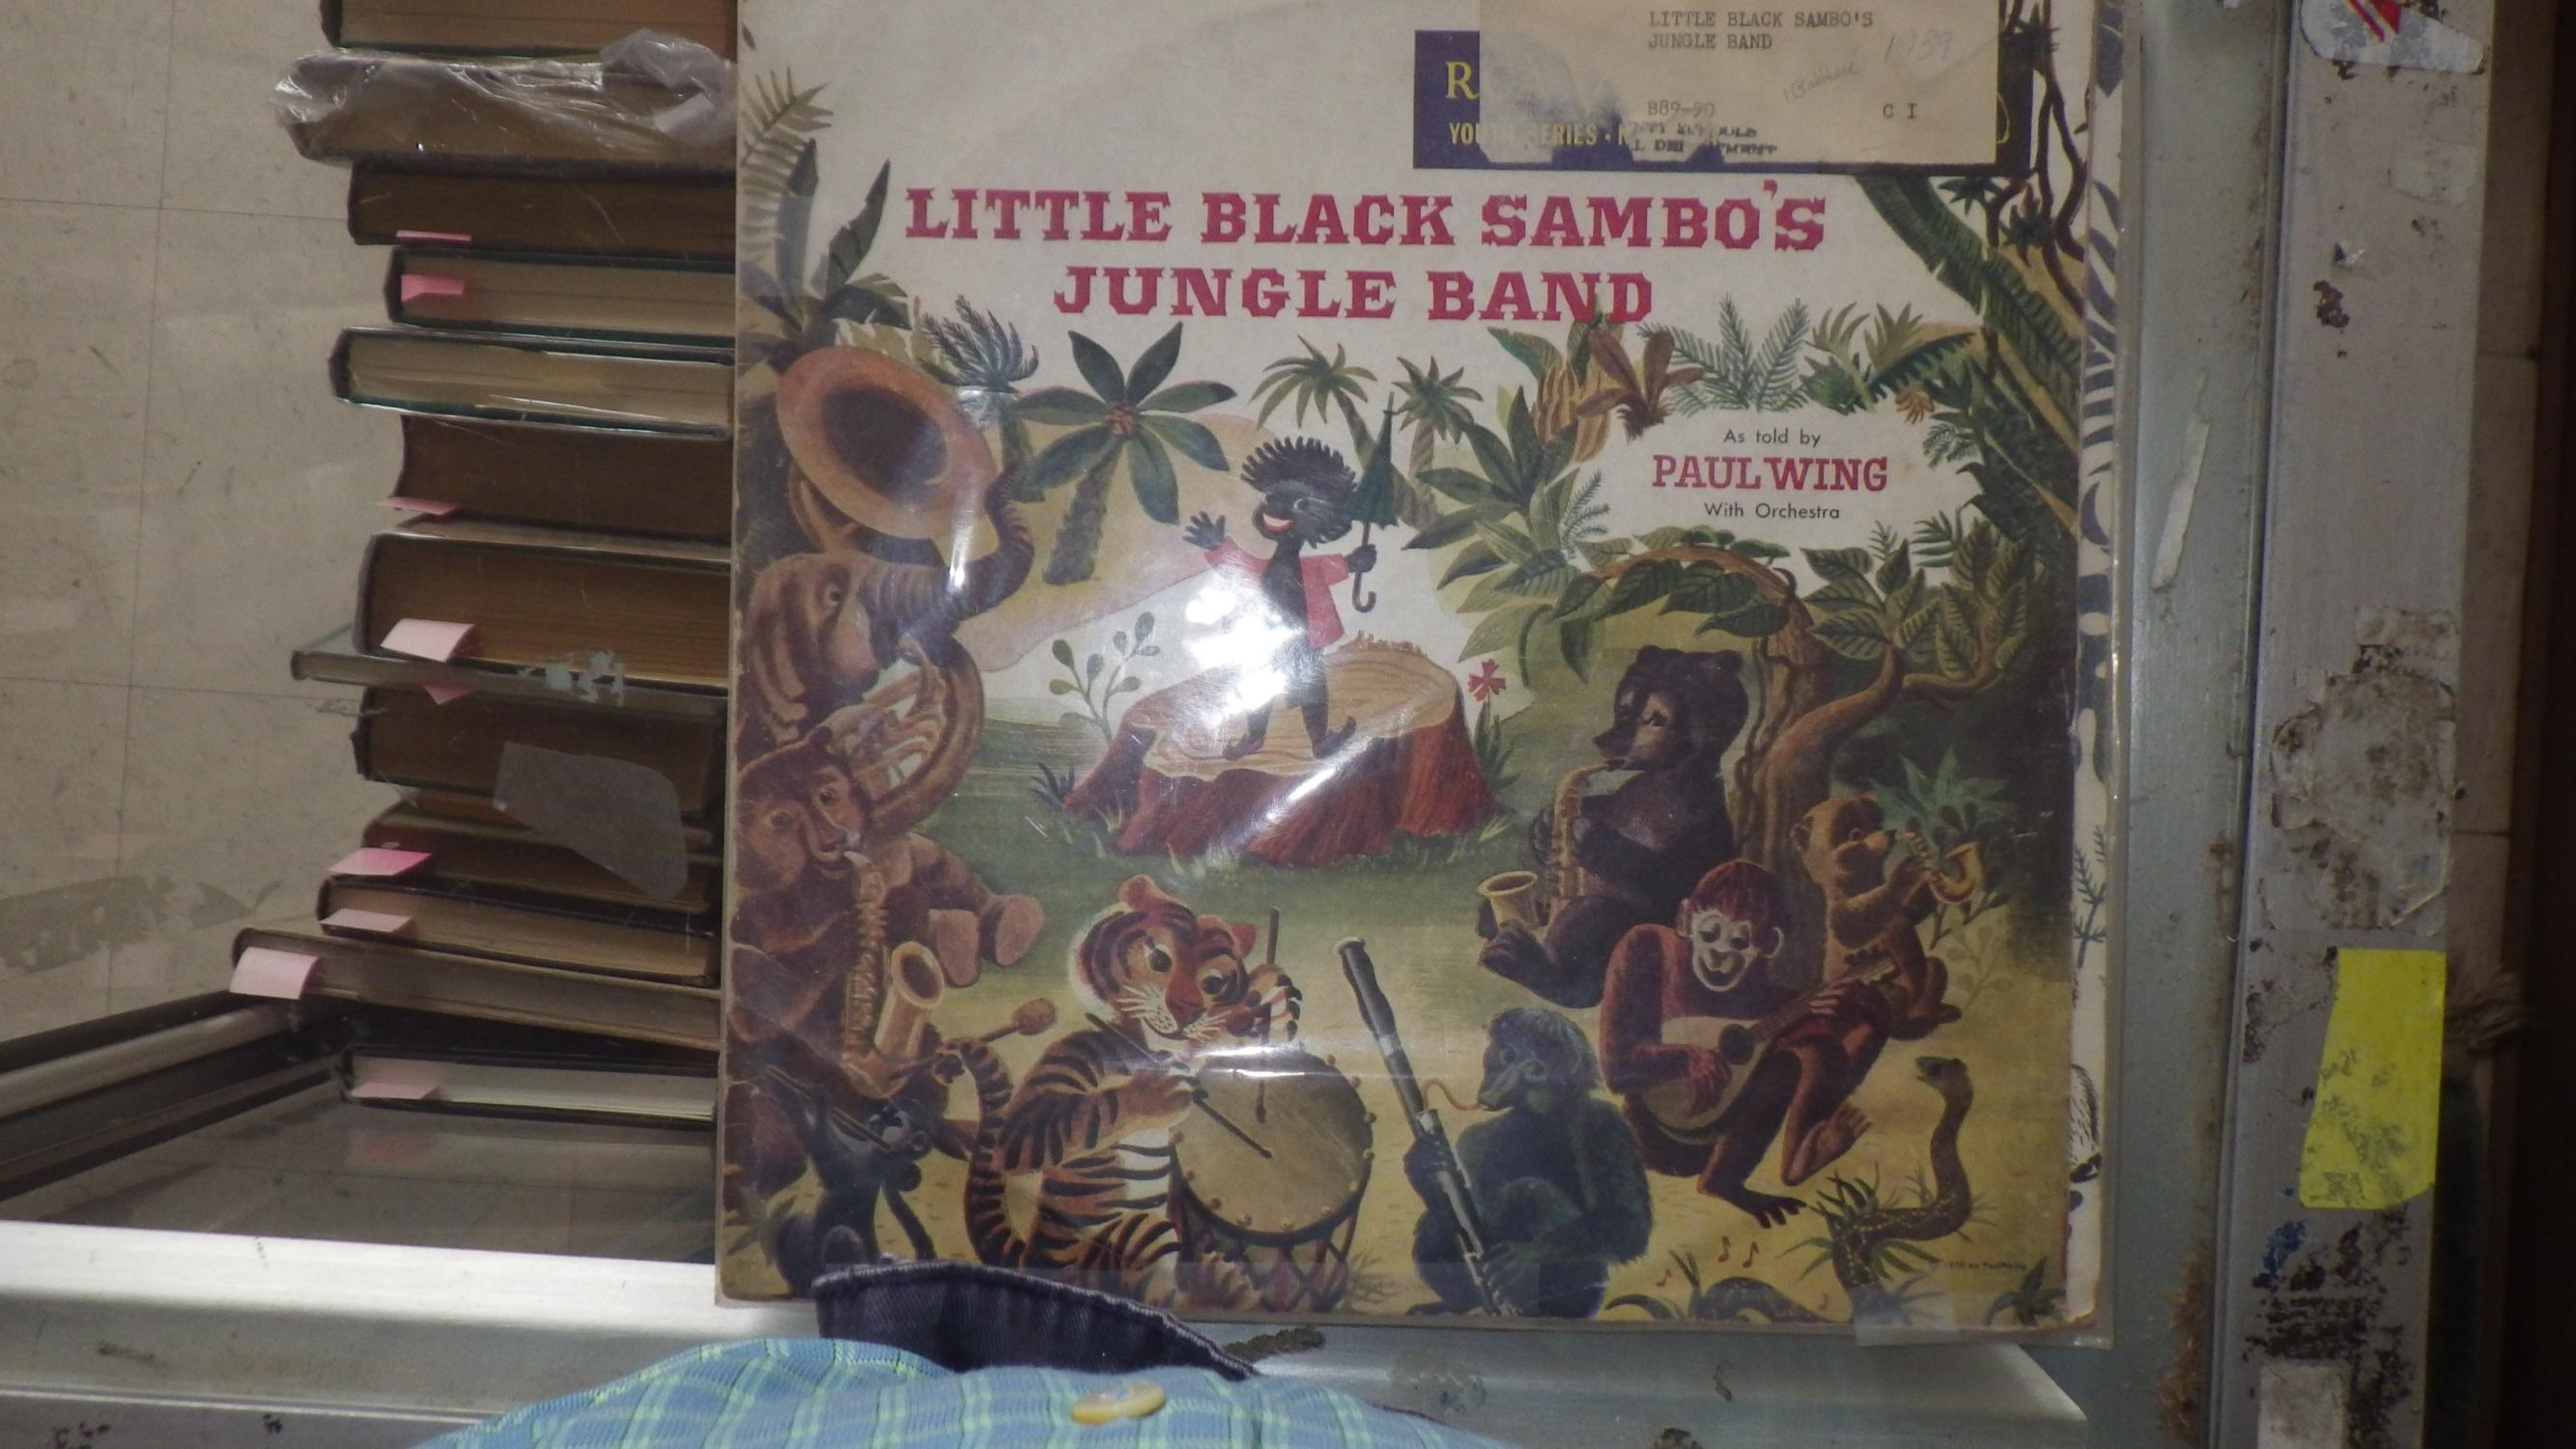 Little Black Sambo's Jungle Band Has Story with 1 45 RPM ...